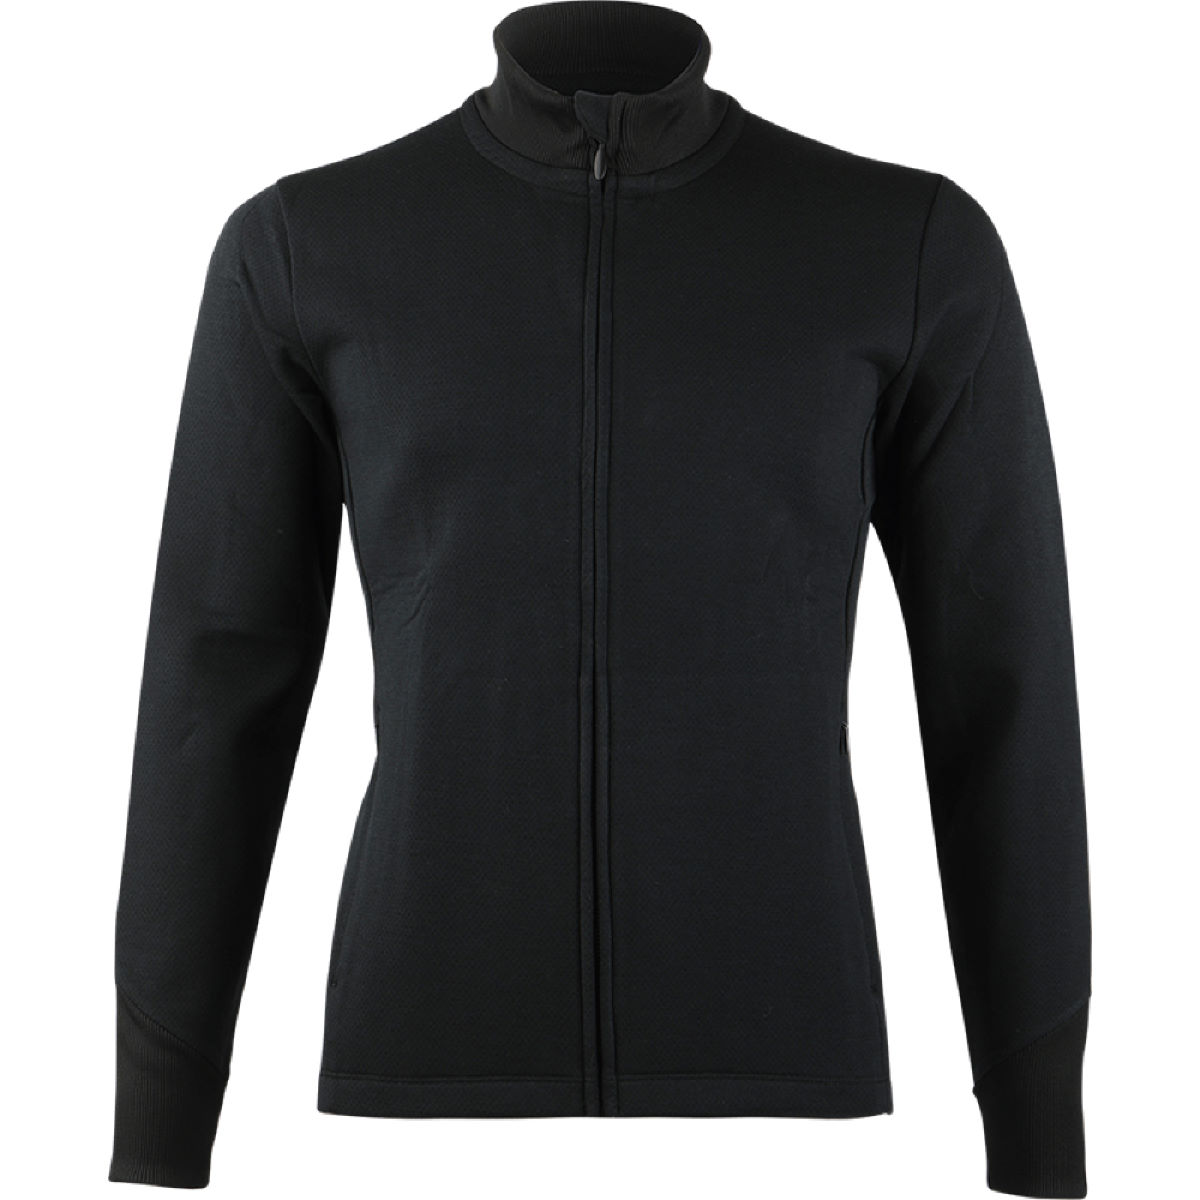 Le Col Track Jacket – XS Black | Jackets